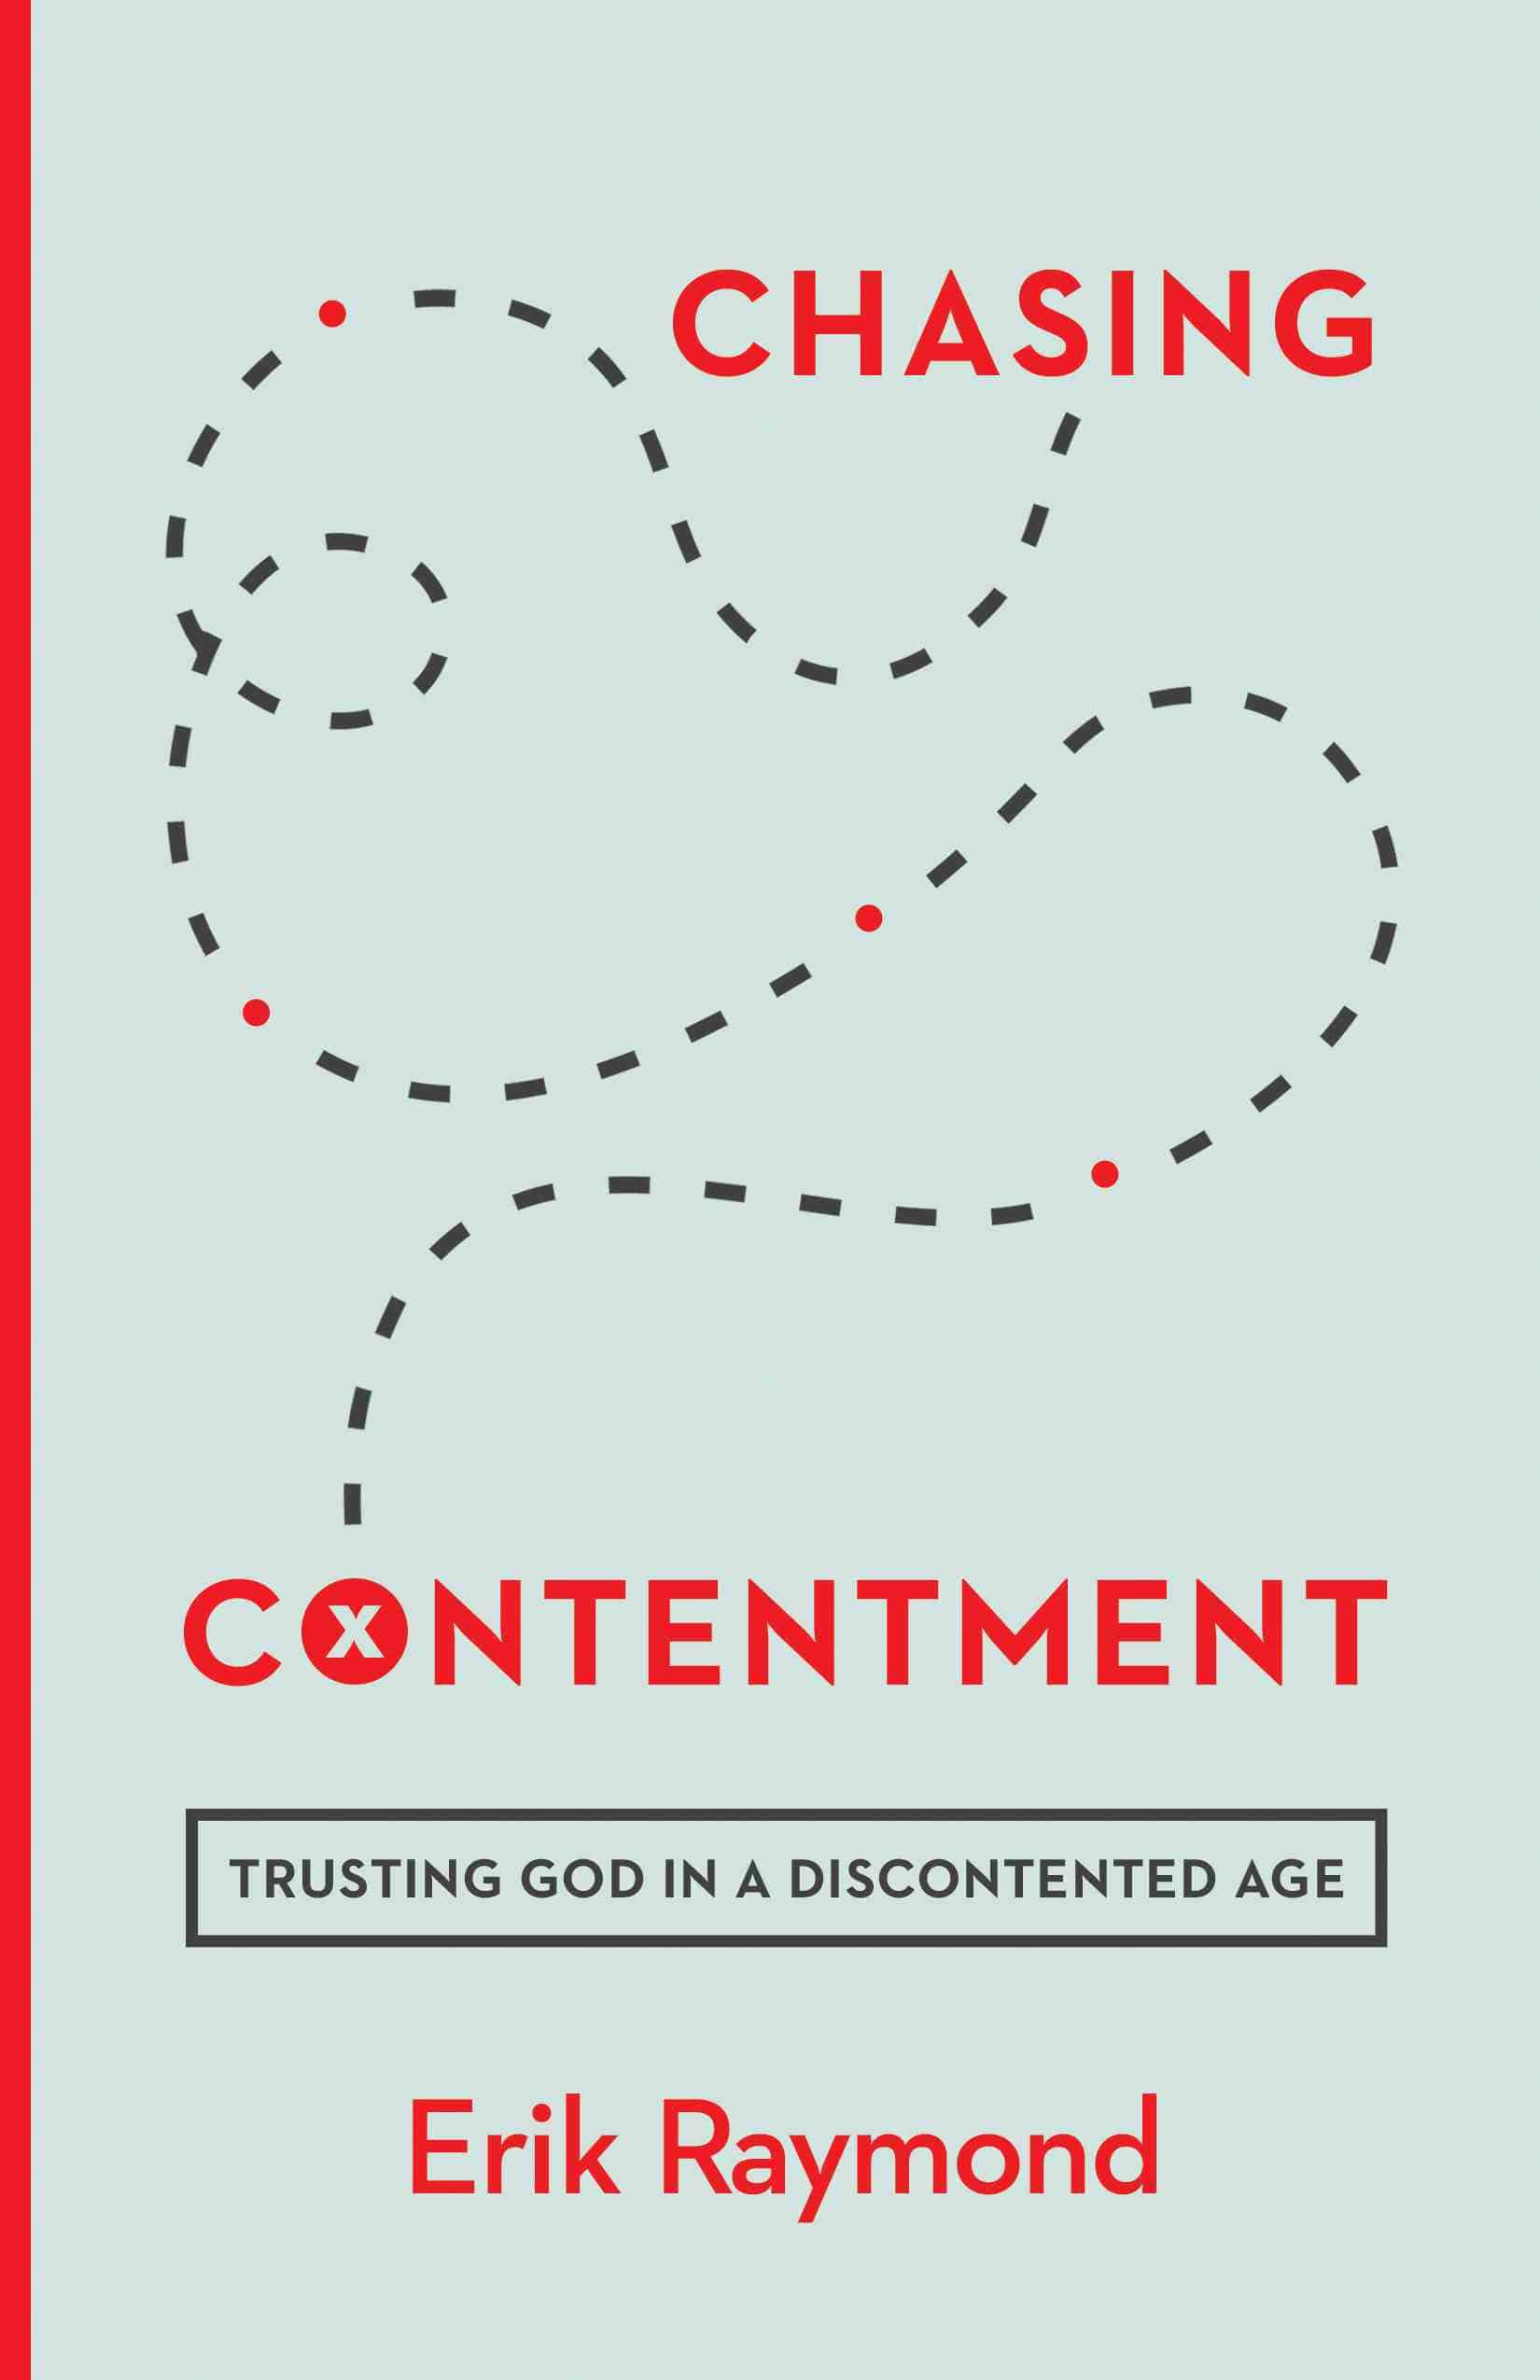 Contentment, Chasing Contentment: Trusting God in a Discontented Age (Erik Raymond), Servants of Grace